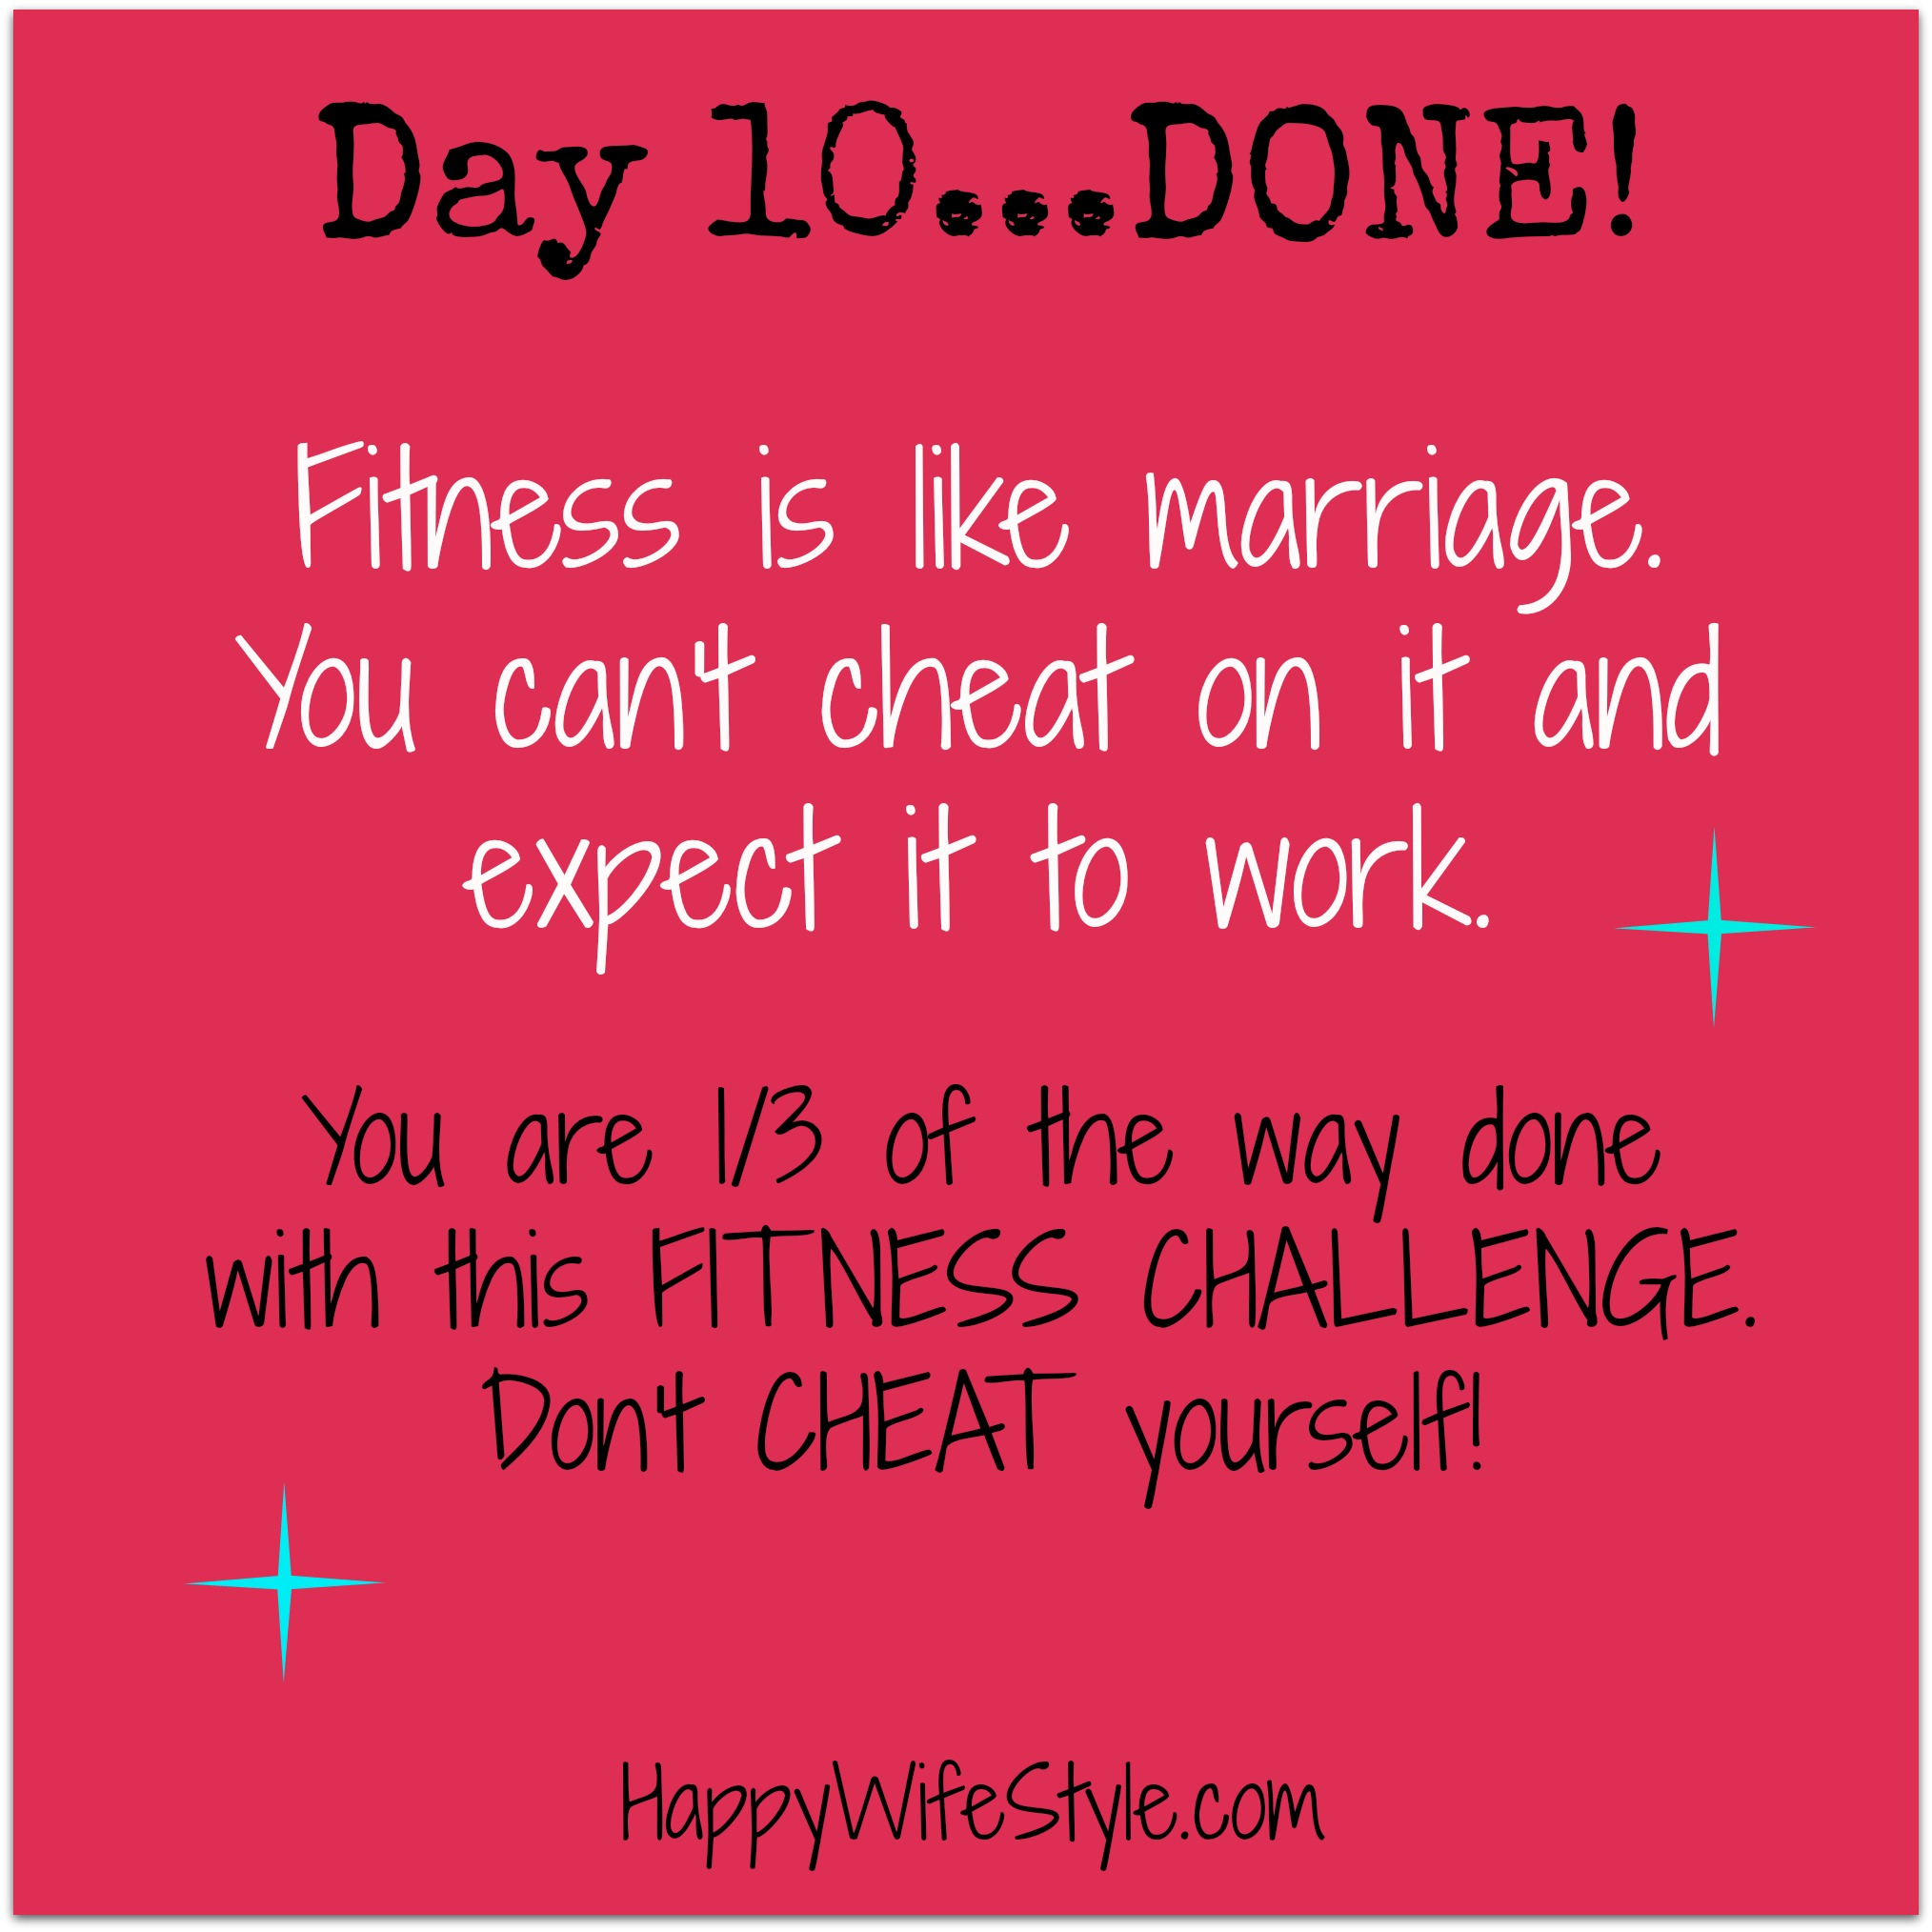 Day-10-done